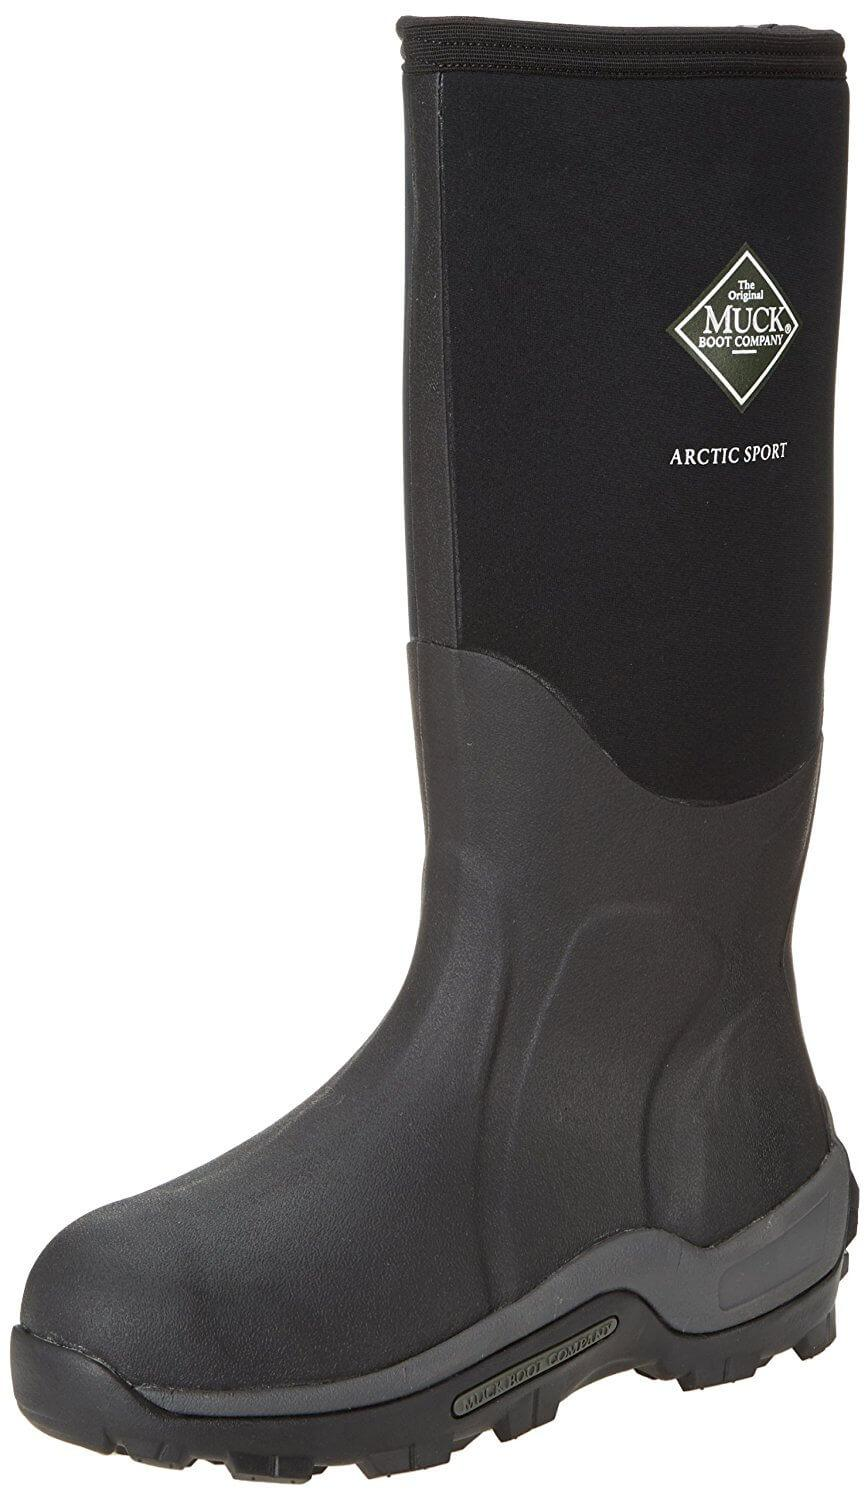 6c47ace3e1d Best Rain Boots Reviewed & Fully Compared | RunnerClick